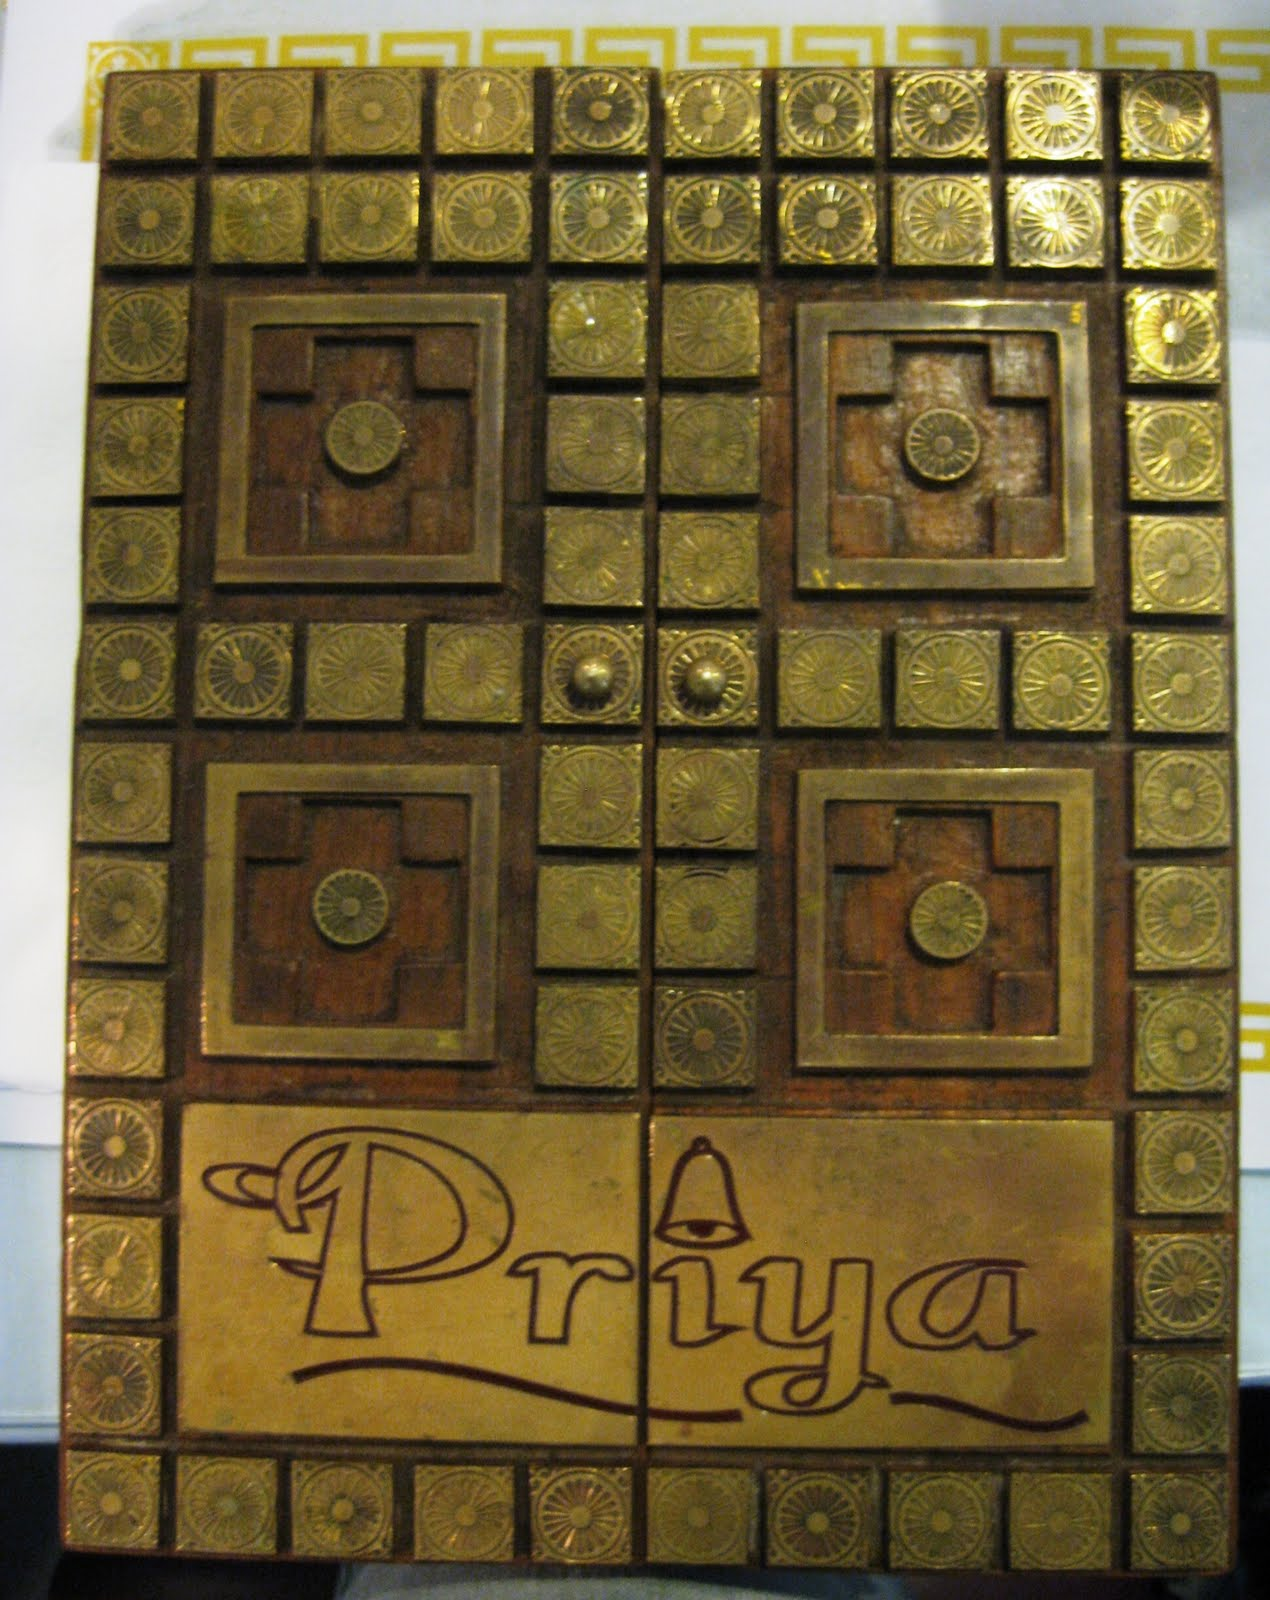 Priya Indian Restaurant Farmington Hills Mi